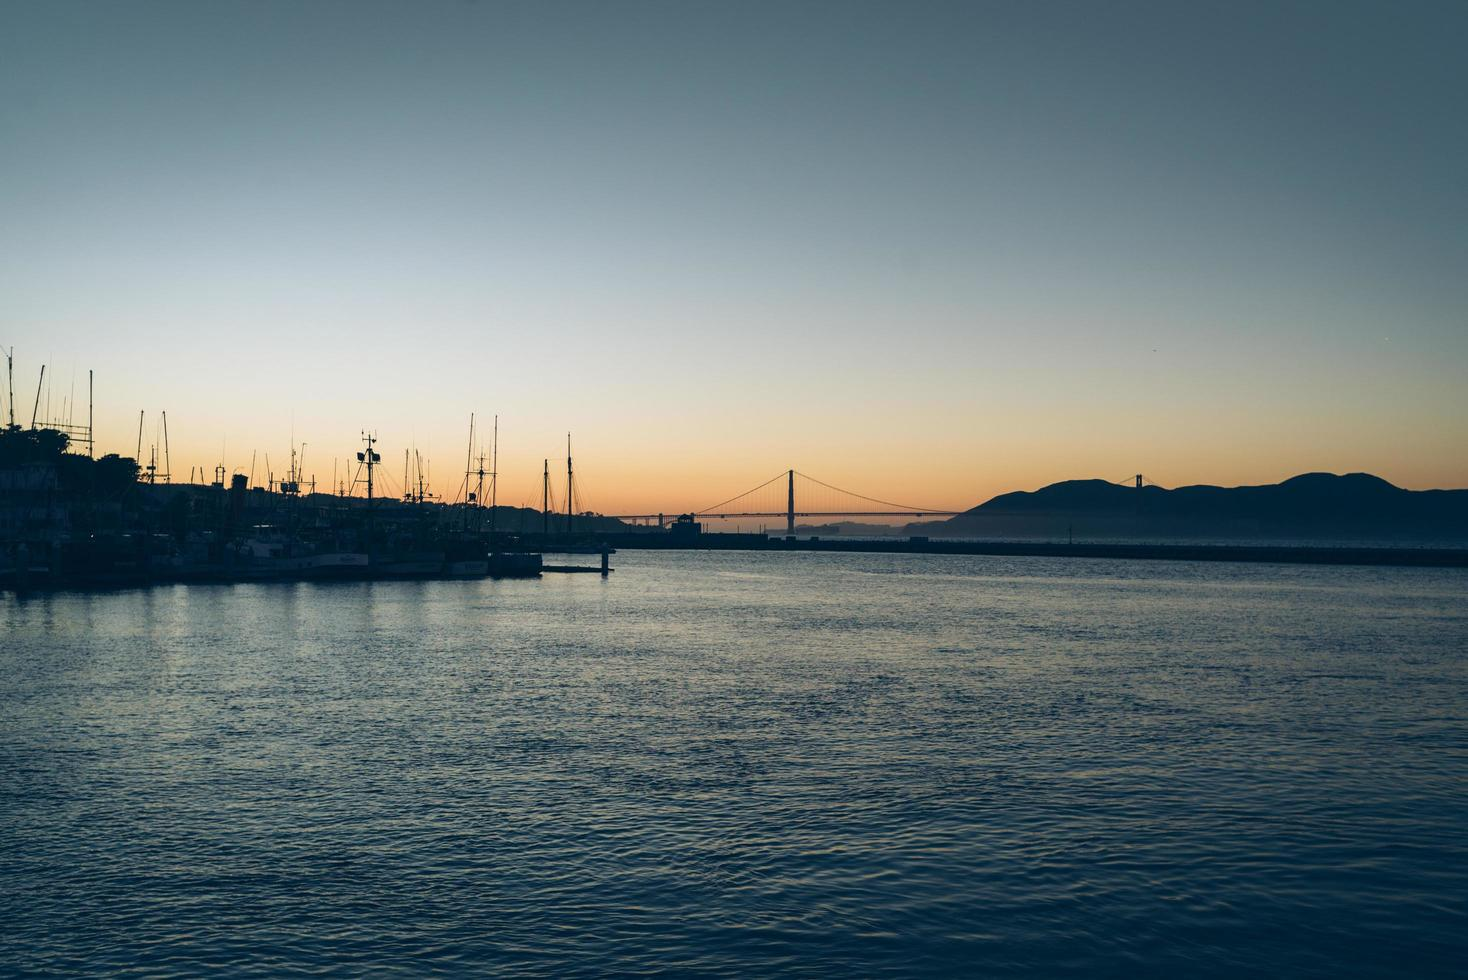 City silhouette at sunset on the water photo